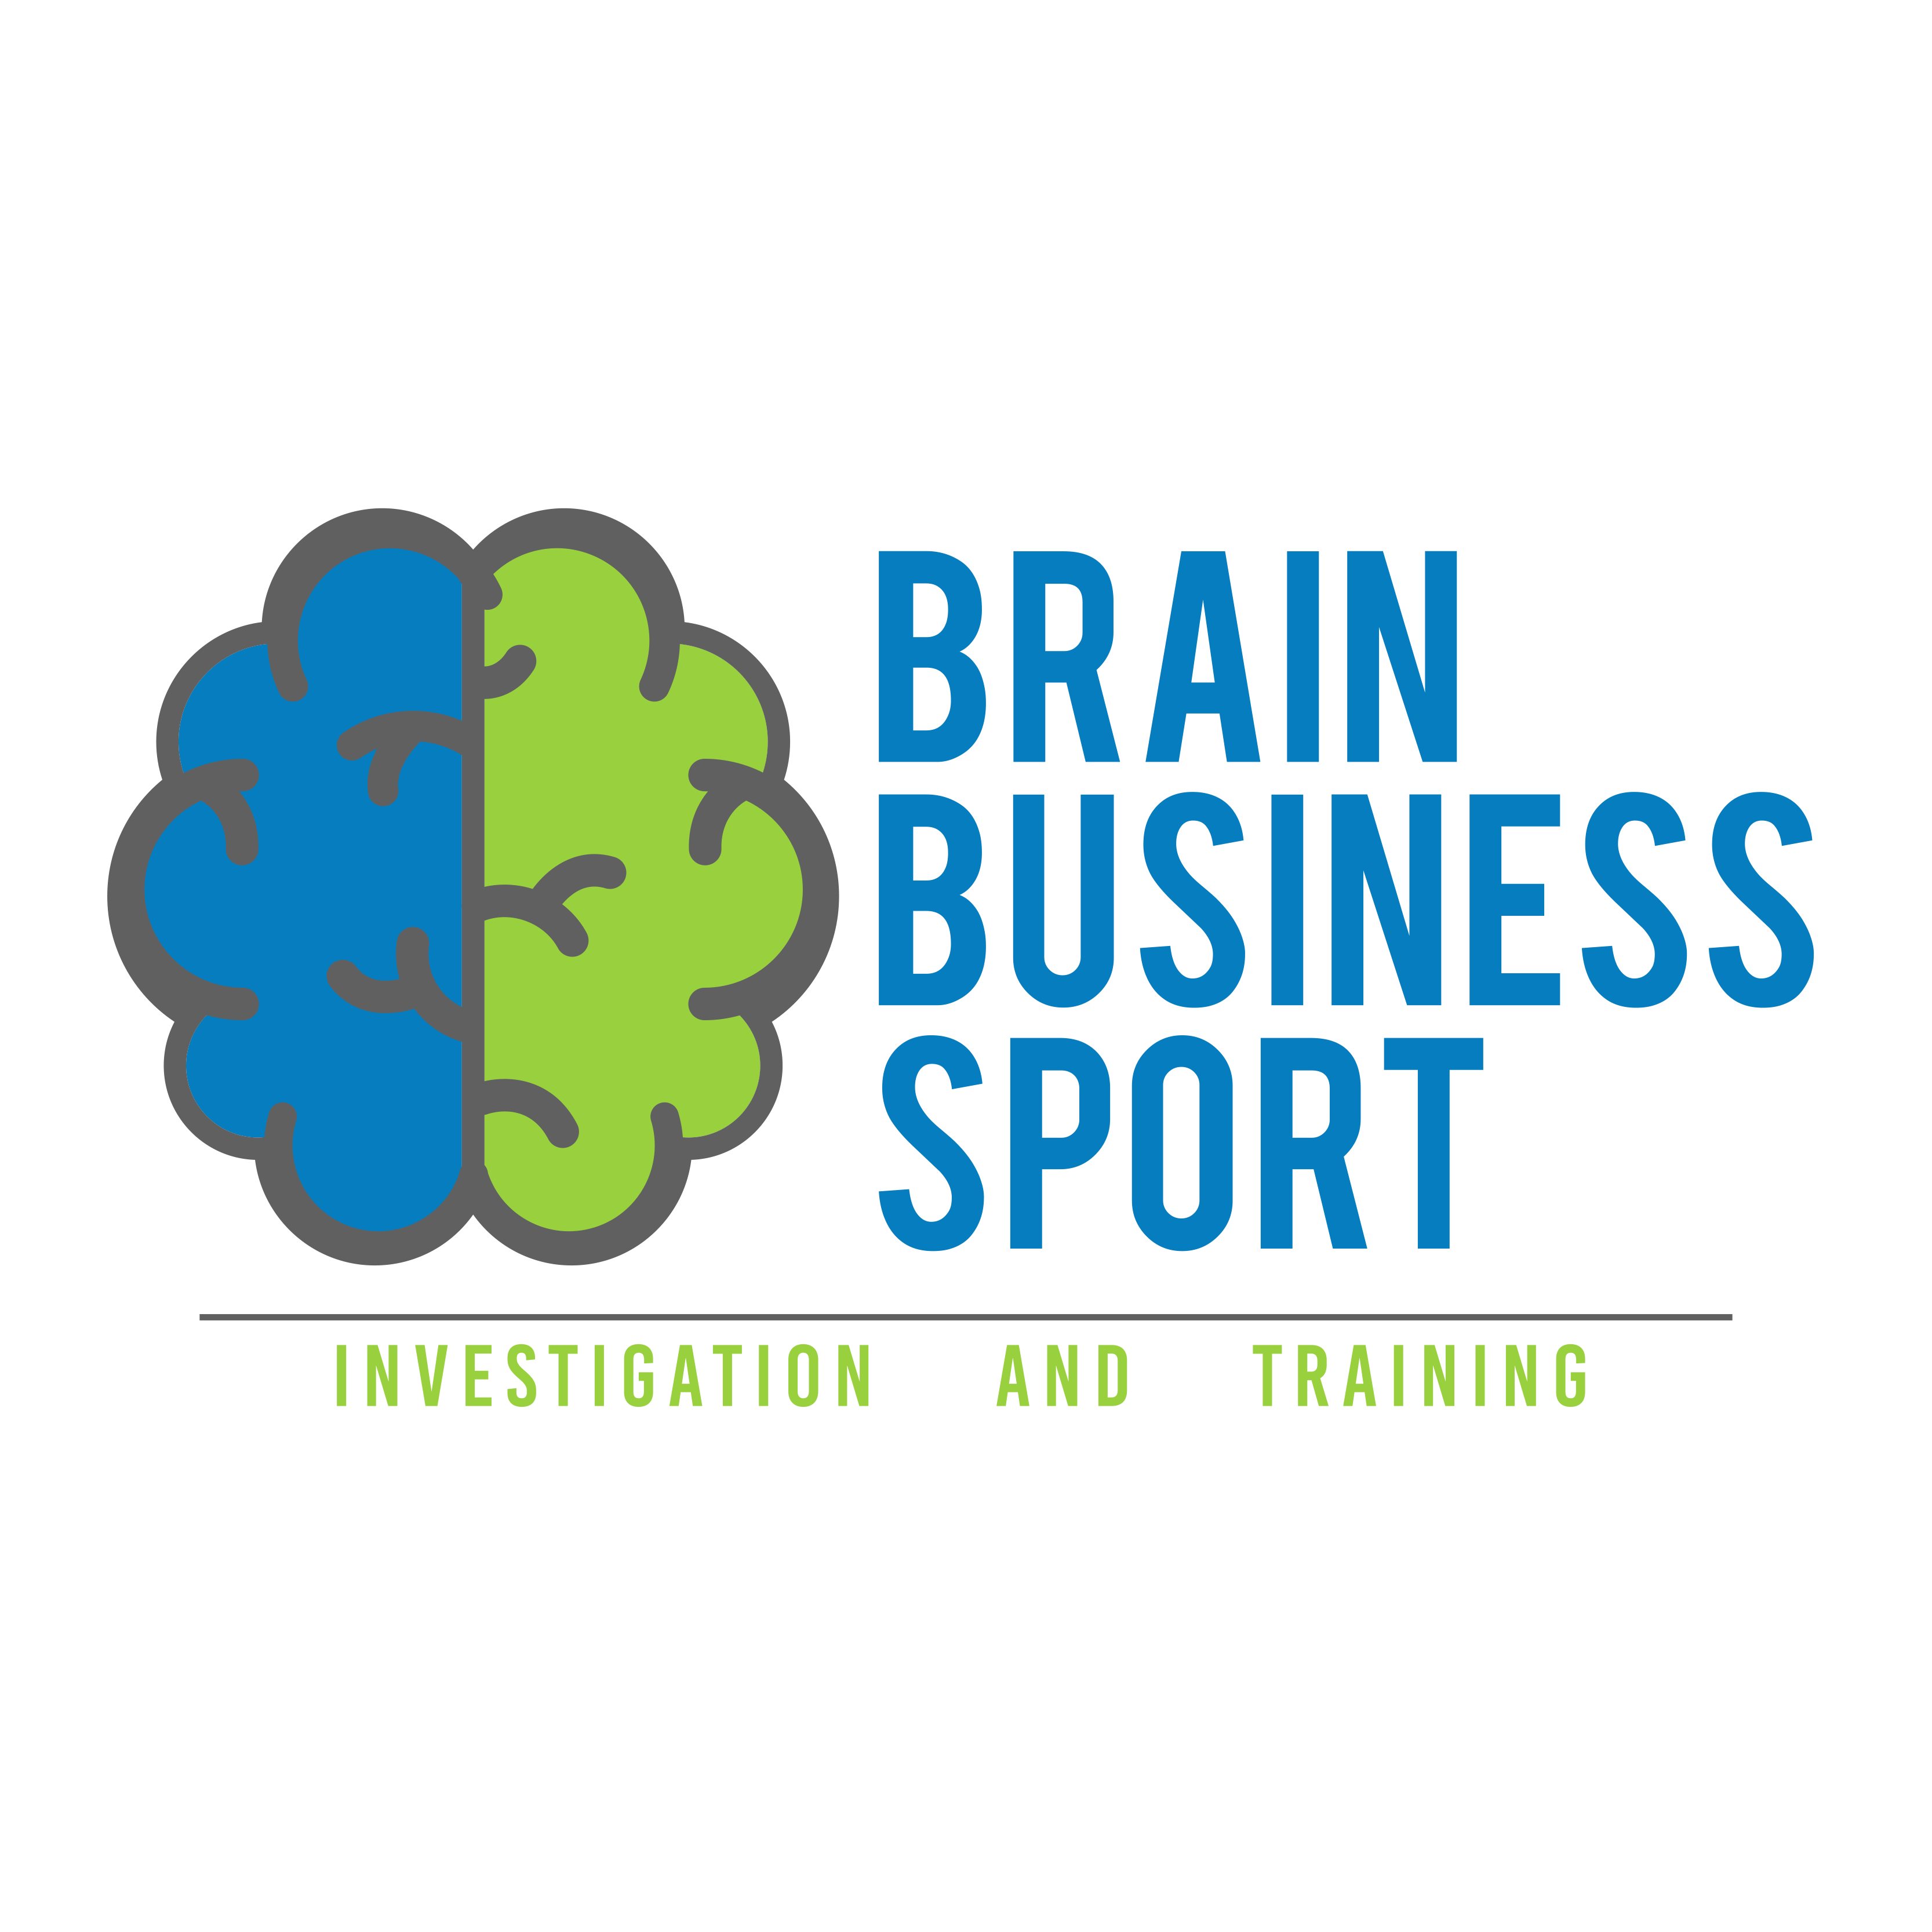 Brain Business Sport